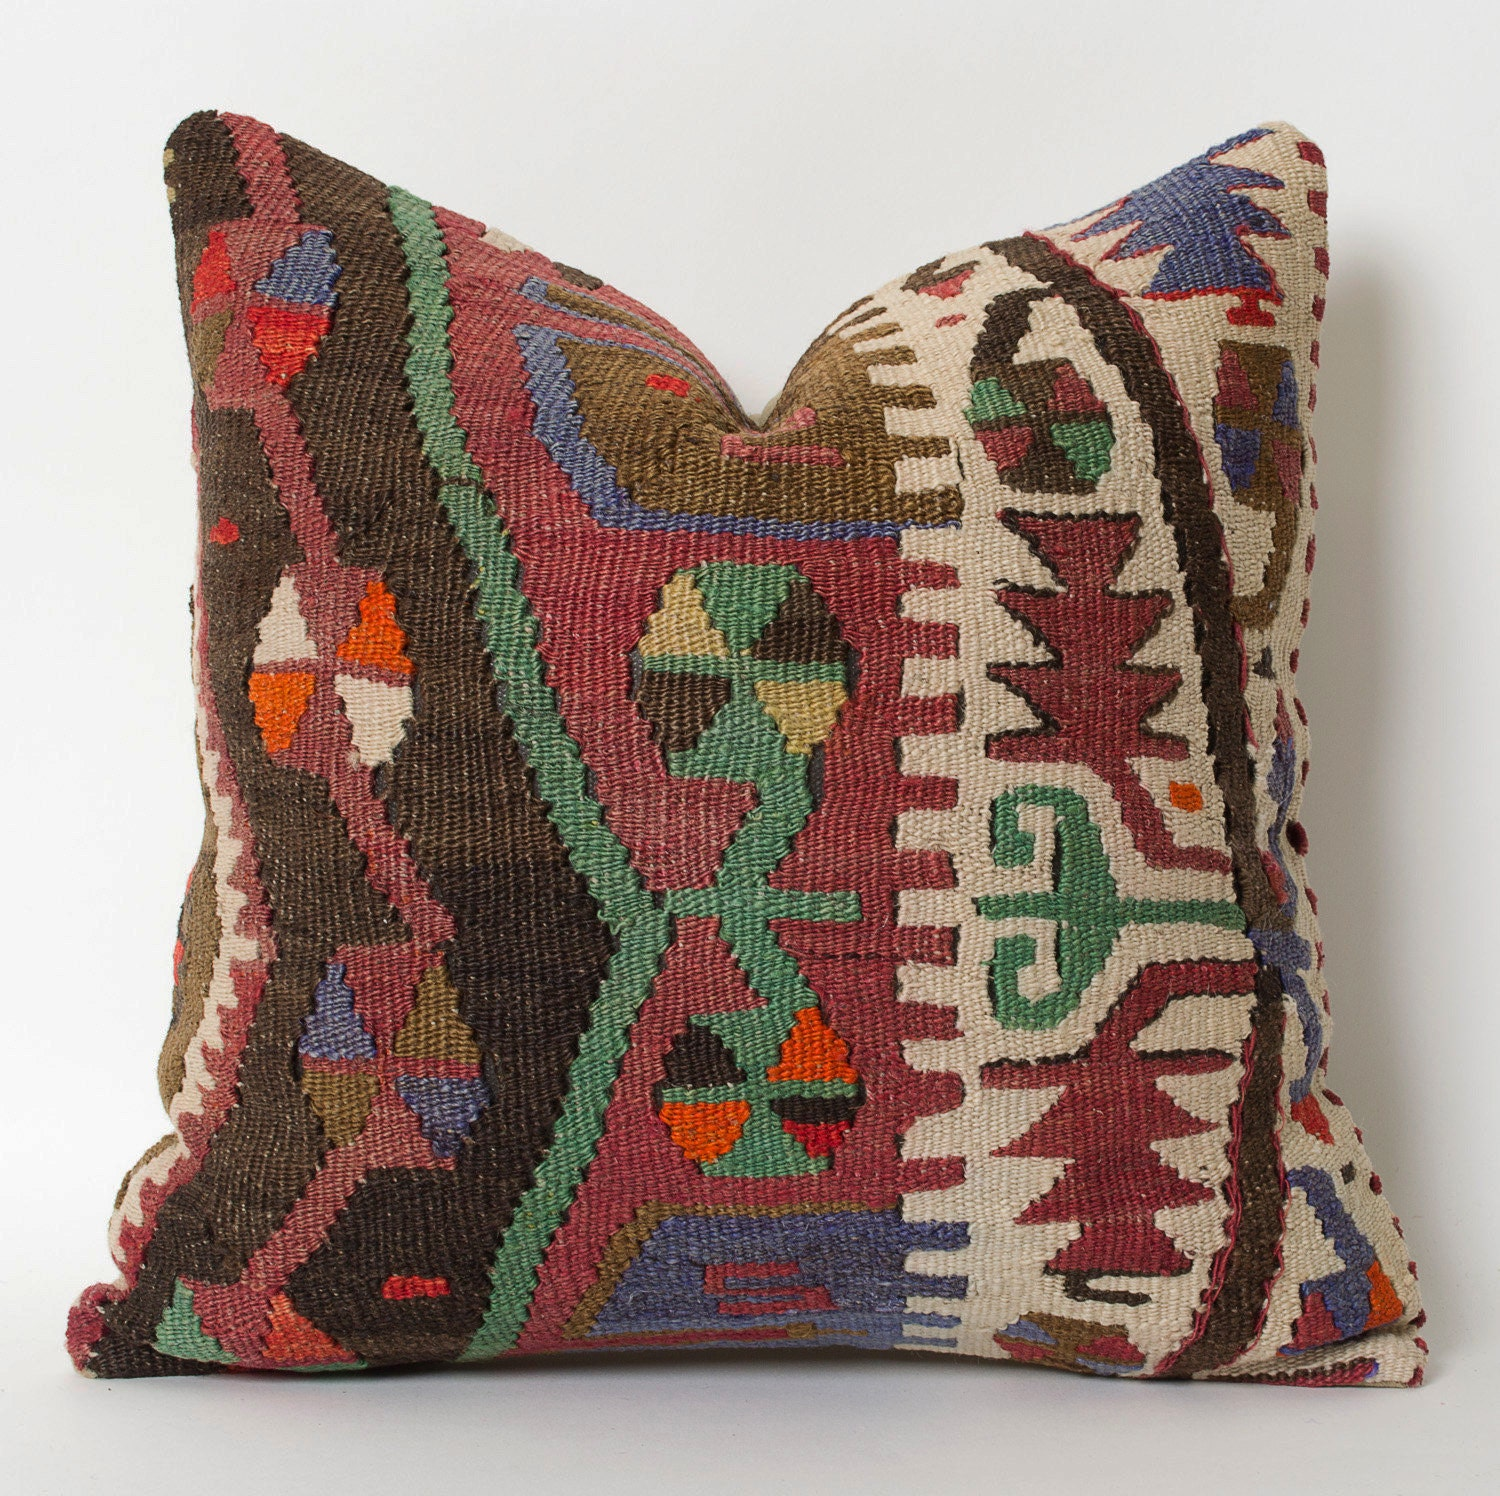 Turkish Kilim Throw Pillows : Kilim Pillowcase Kilim Throw Pillow Turkish Pillow